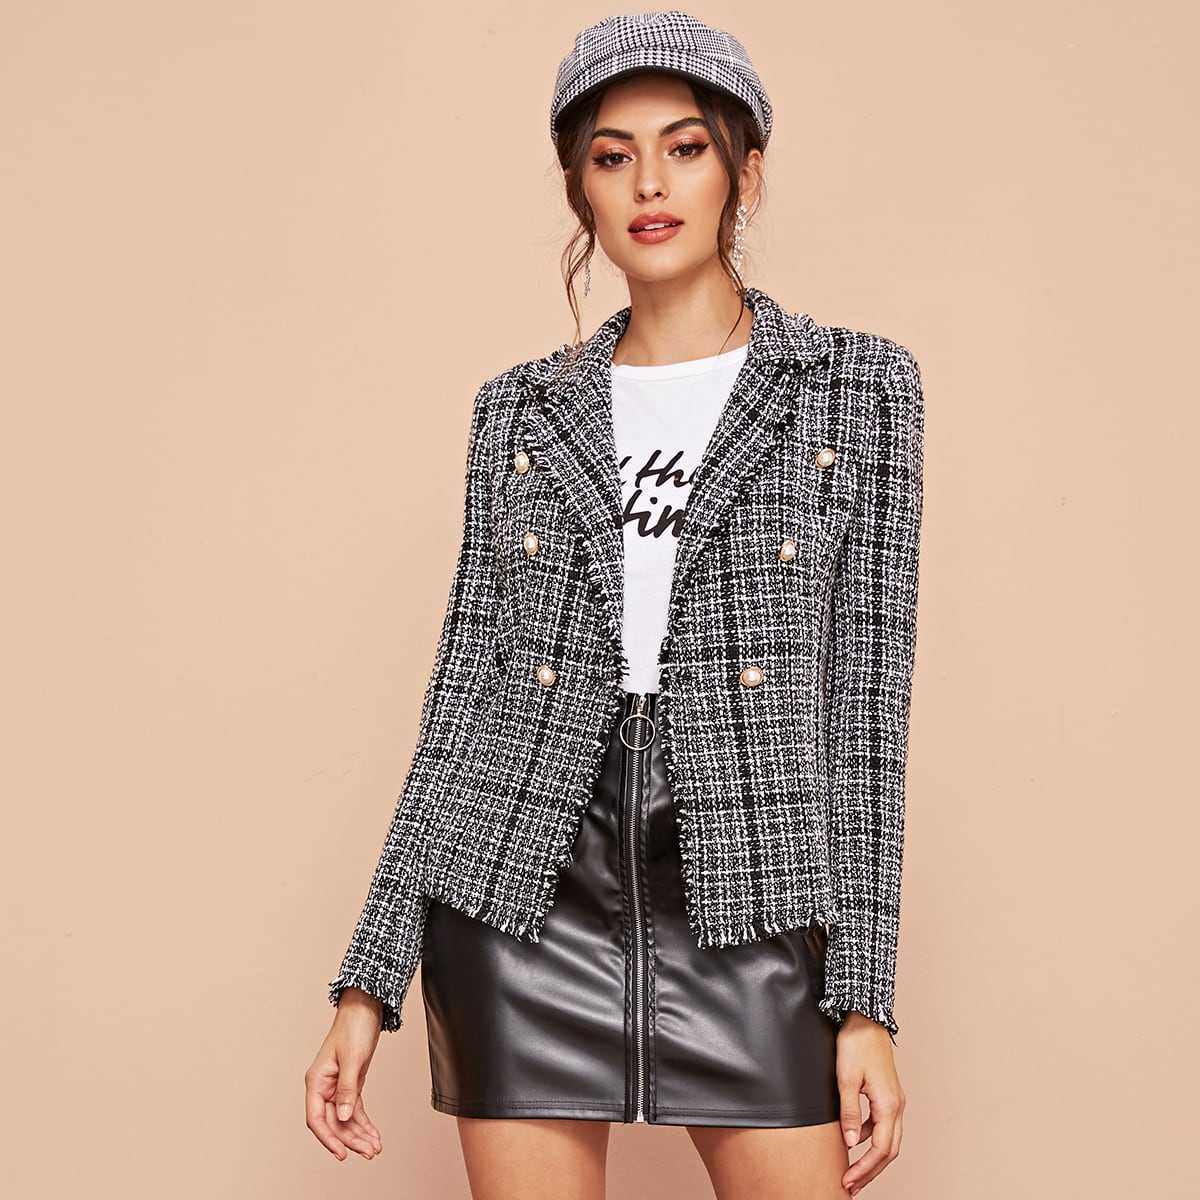 Notch Collar Double Breasted Front Tweed Blazer in Black and White by ROMWE on GOOFASH